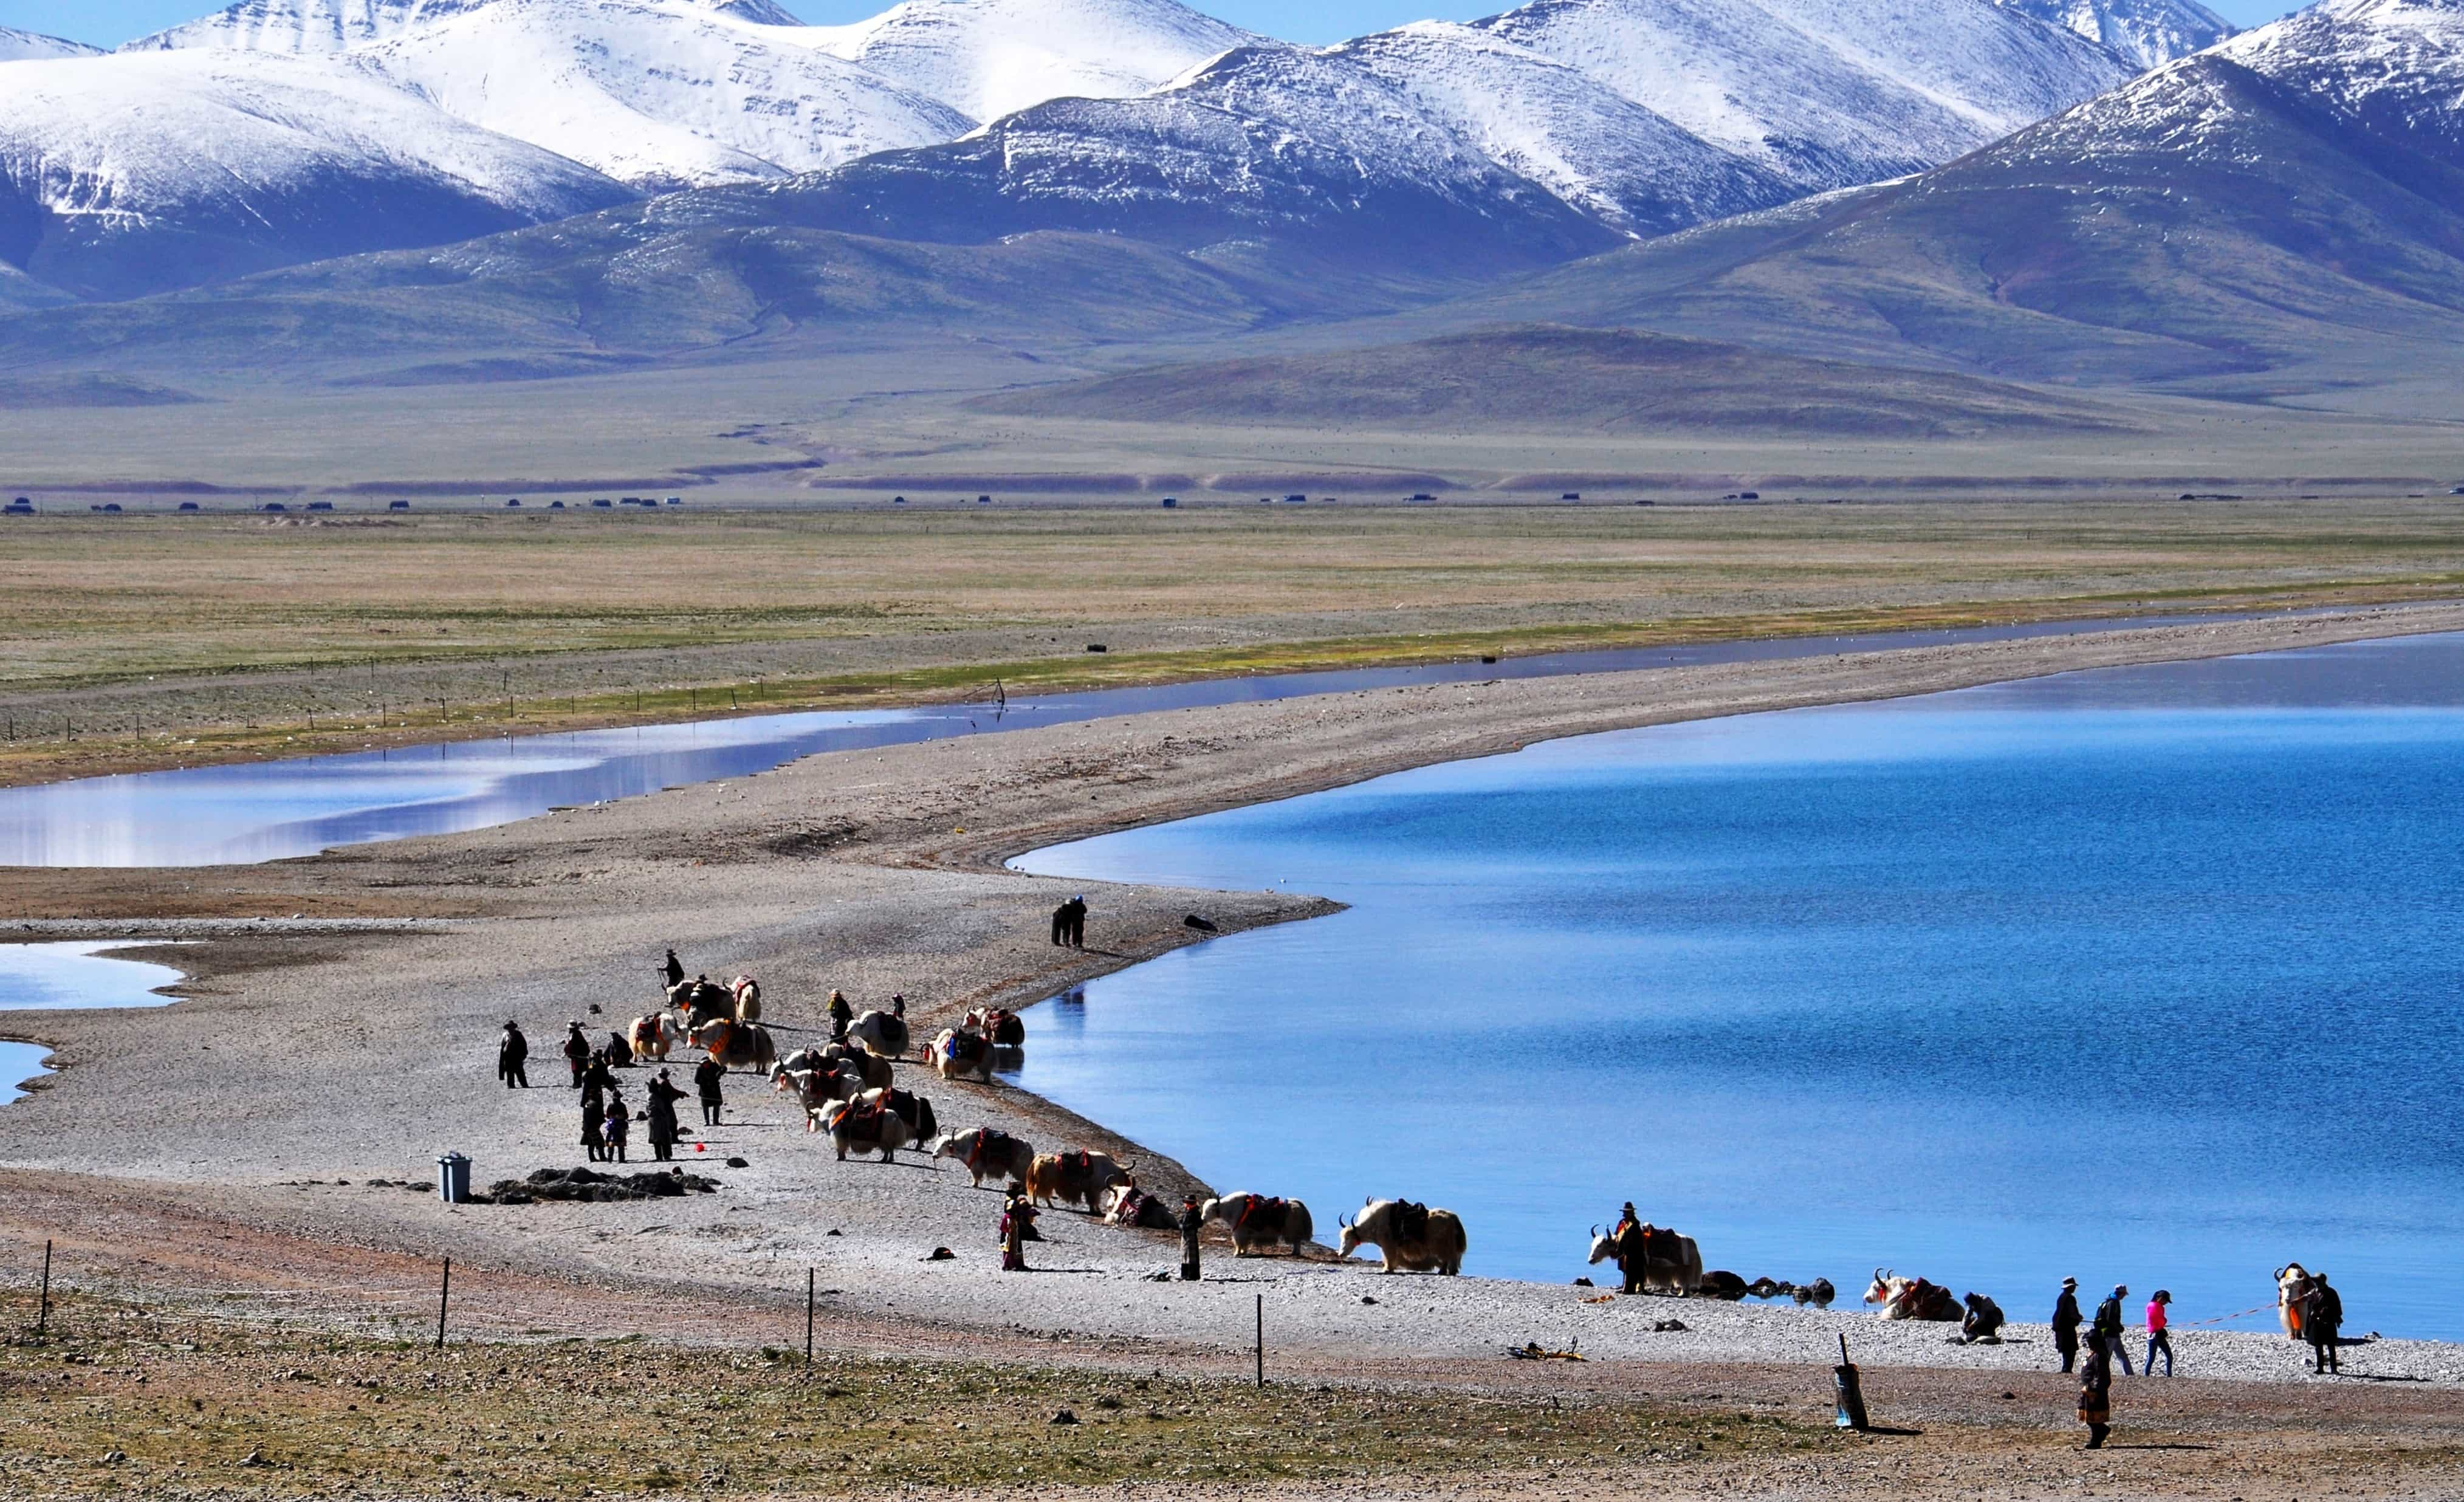 Yaks near the sacred Namtso lake in Tibet